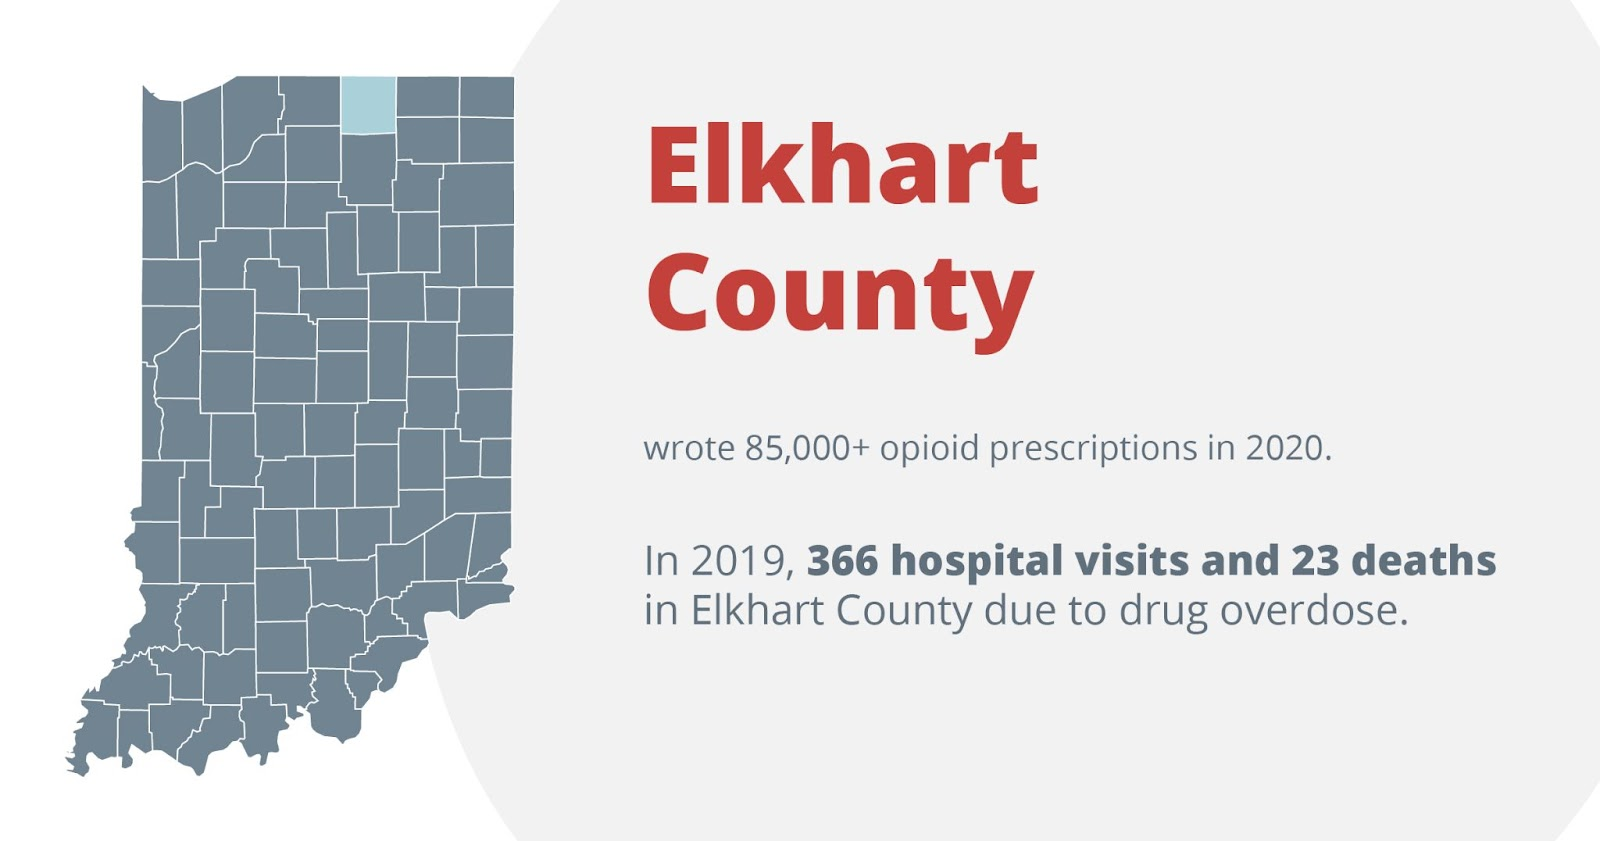 Elkhart county wrote 85,000+ opioid prescriptions in 2020. in 2019, 366 hospital visits and 23 deaths in elkhart county due to drug overdose